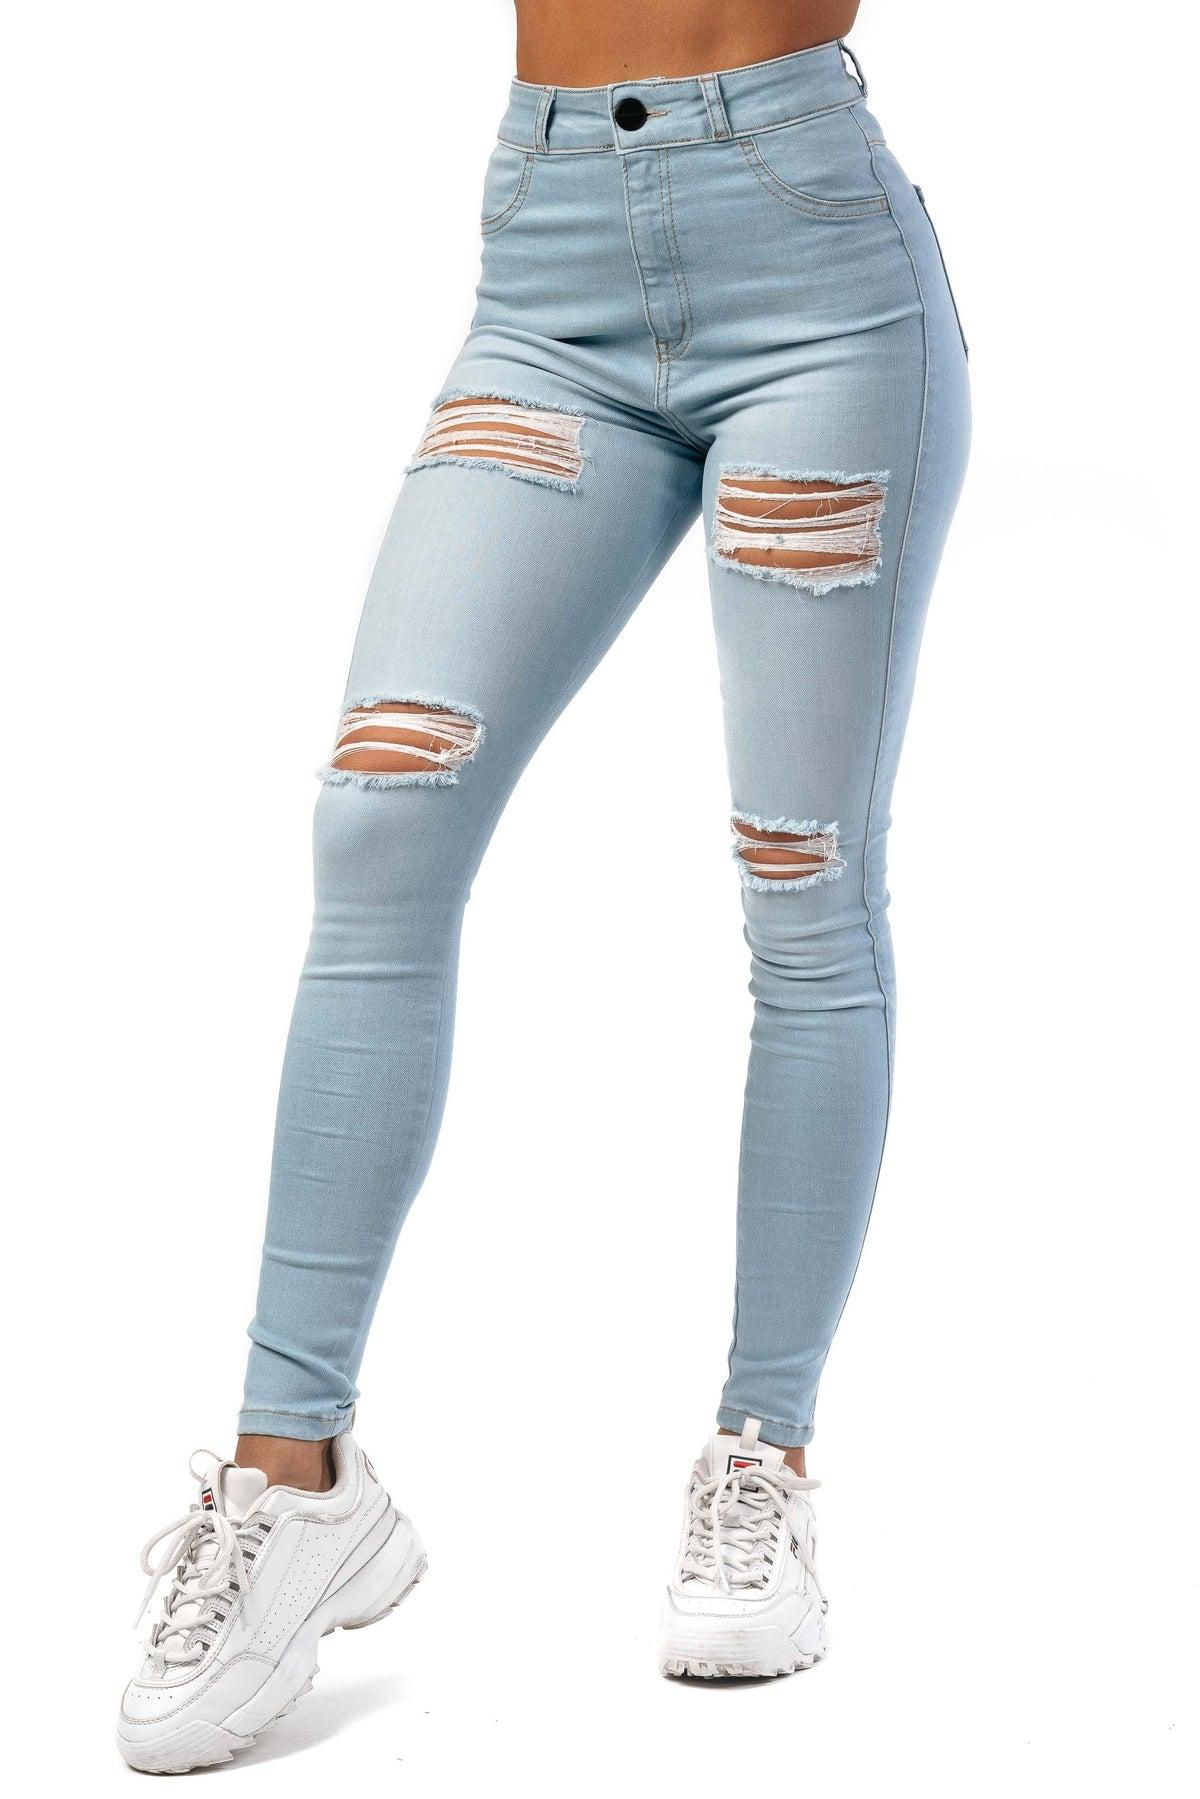 Womens Regular 4 Hole Ripped High Waisted Fitjeans - Vintage Blue